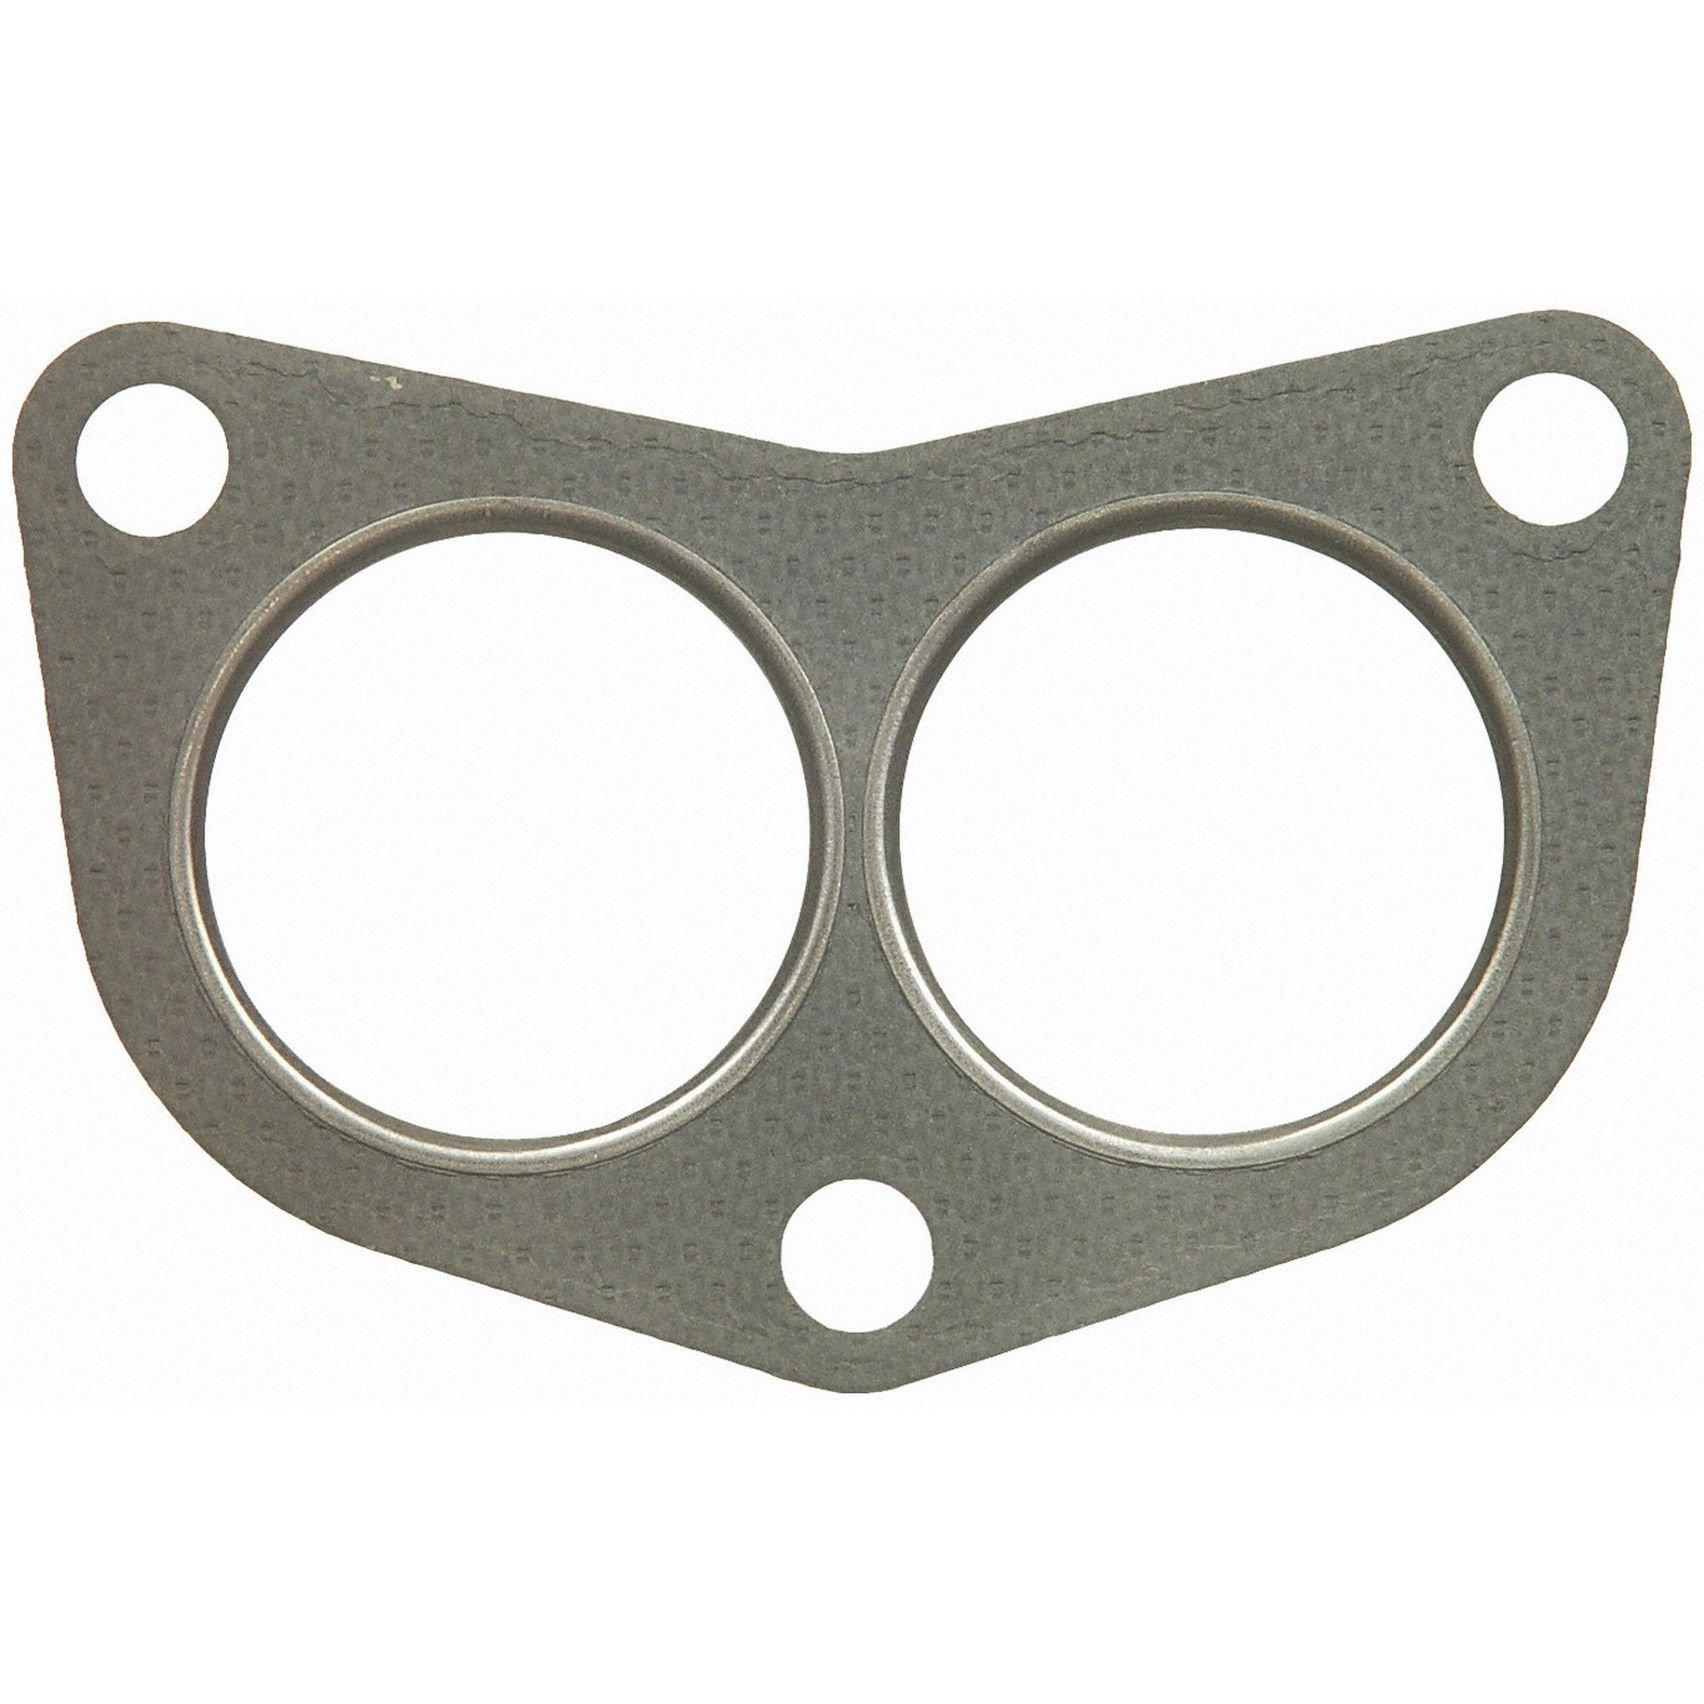 Isuzu Rodeo Exhaust Pipe Flange Gasket Replacement Bosal Felpro 1992 Engine 4 Cyl 26l 60857 Excludes California